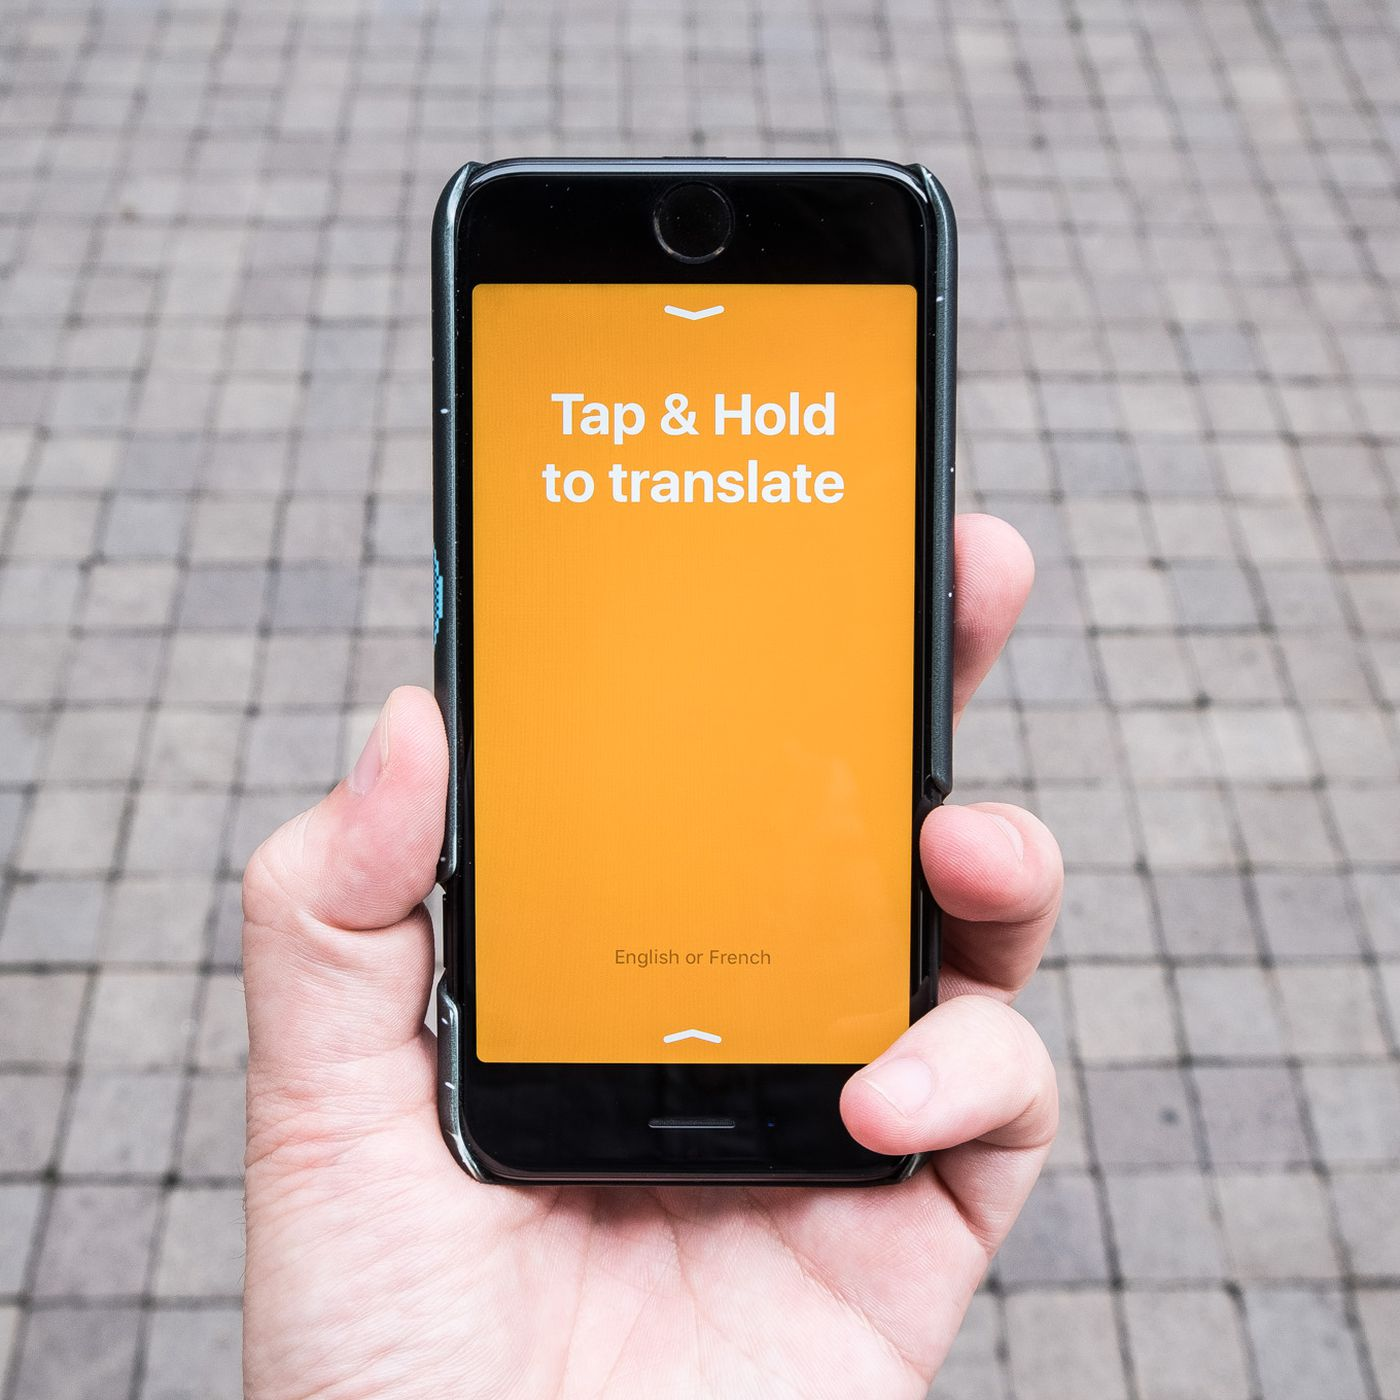 iTranslate's new app gets us one step closer to simple, real-time